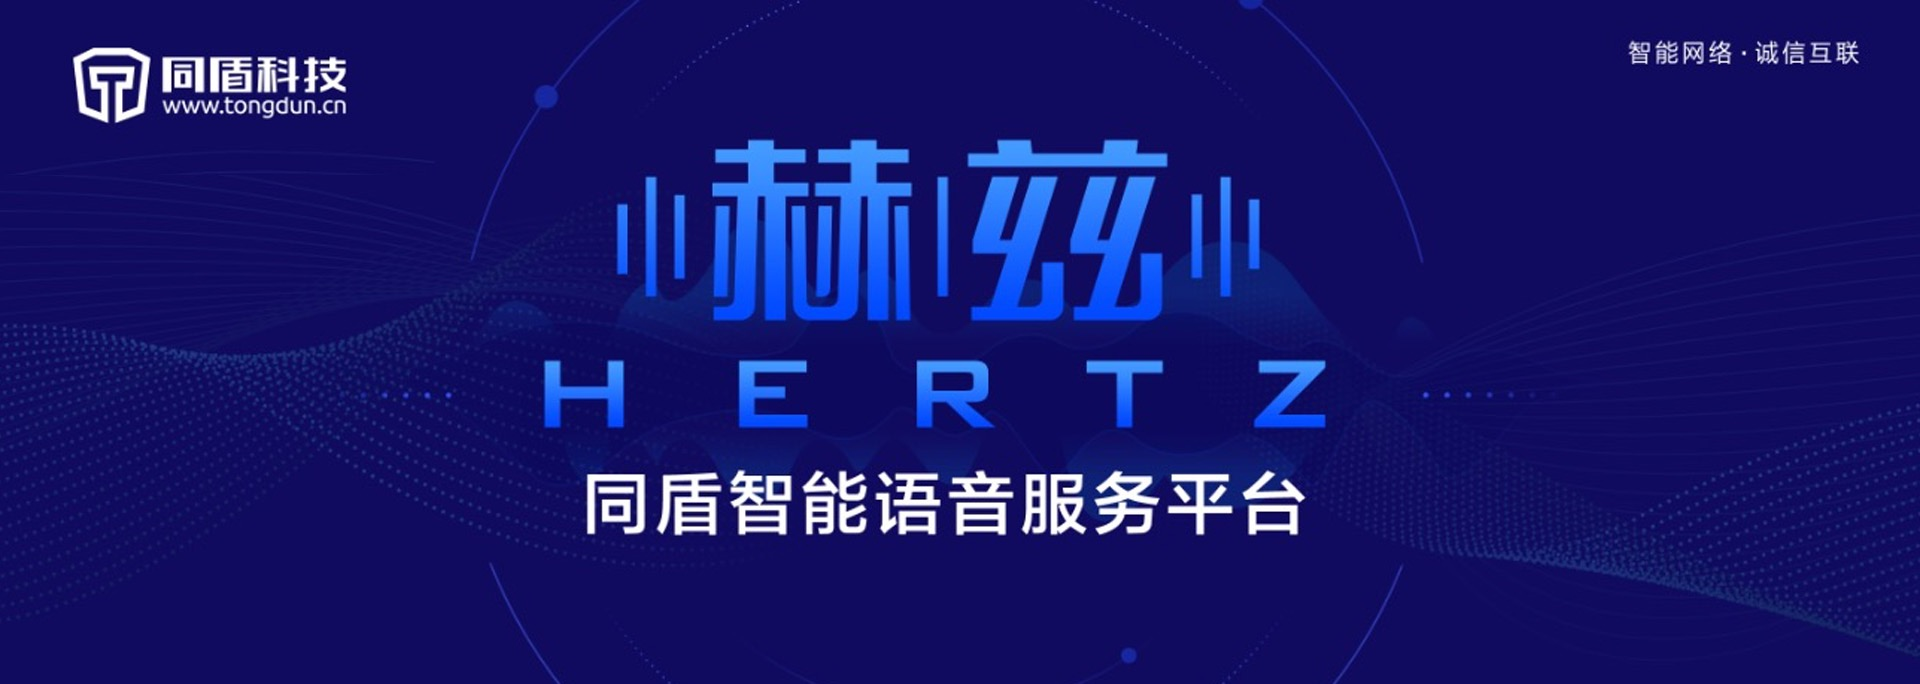 Wuzhen World Internet Conference | Tongdun's Jiang Tao Speaks About the  Financial Intelligence Transformation in the Digital Economy Era